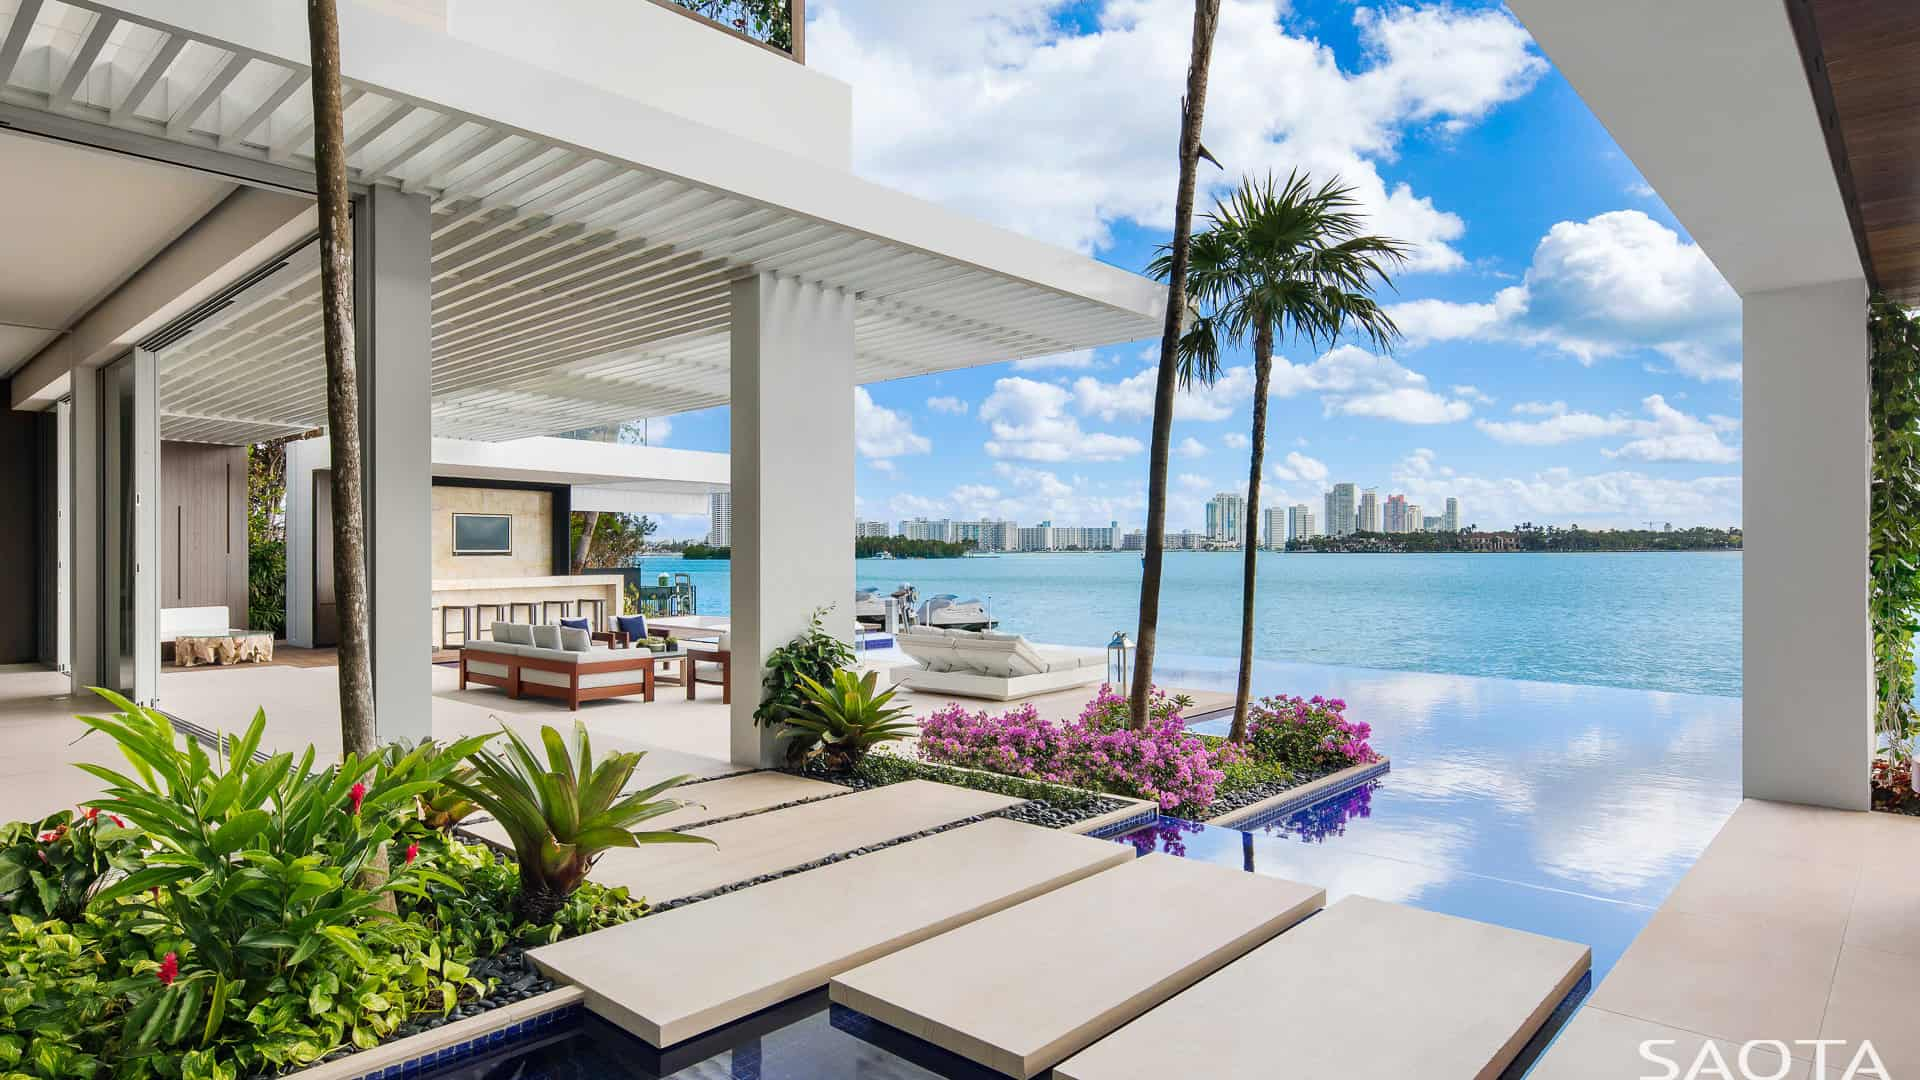 This modish poolside patio offers a great seats and view to the city's river.